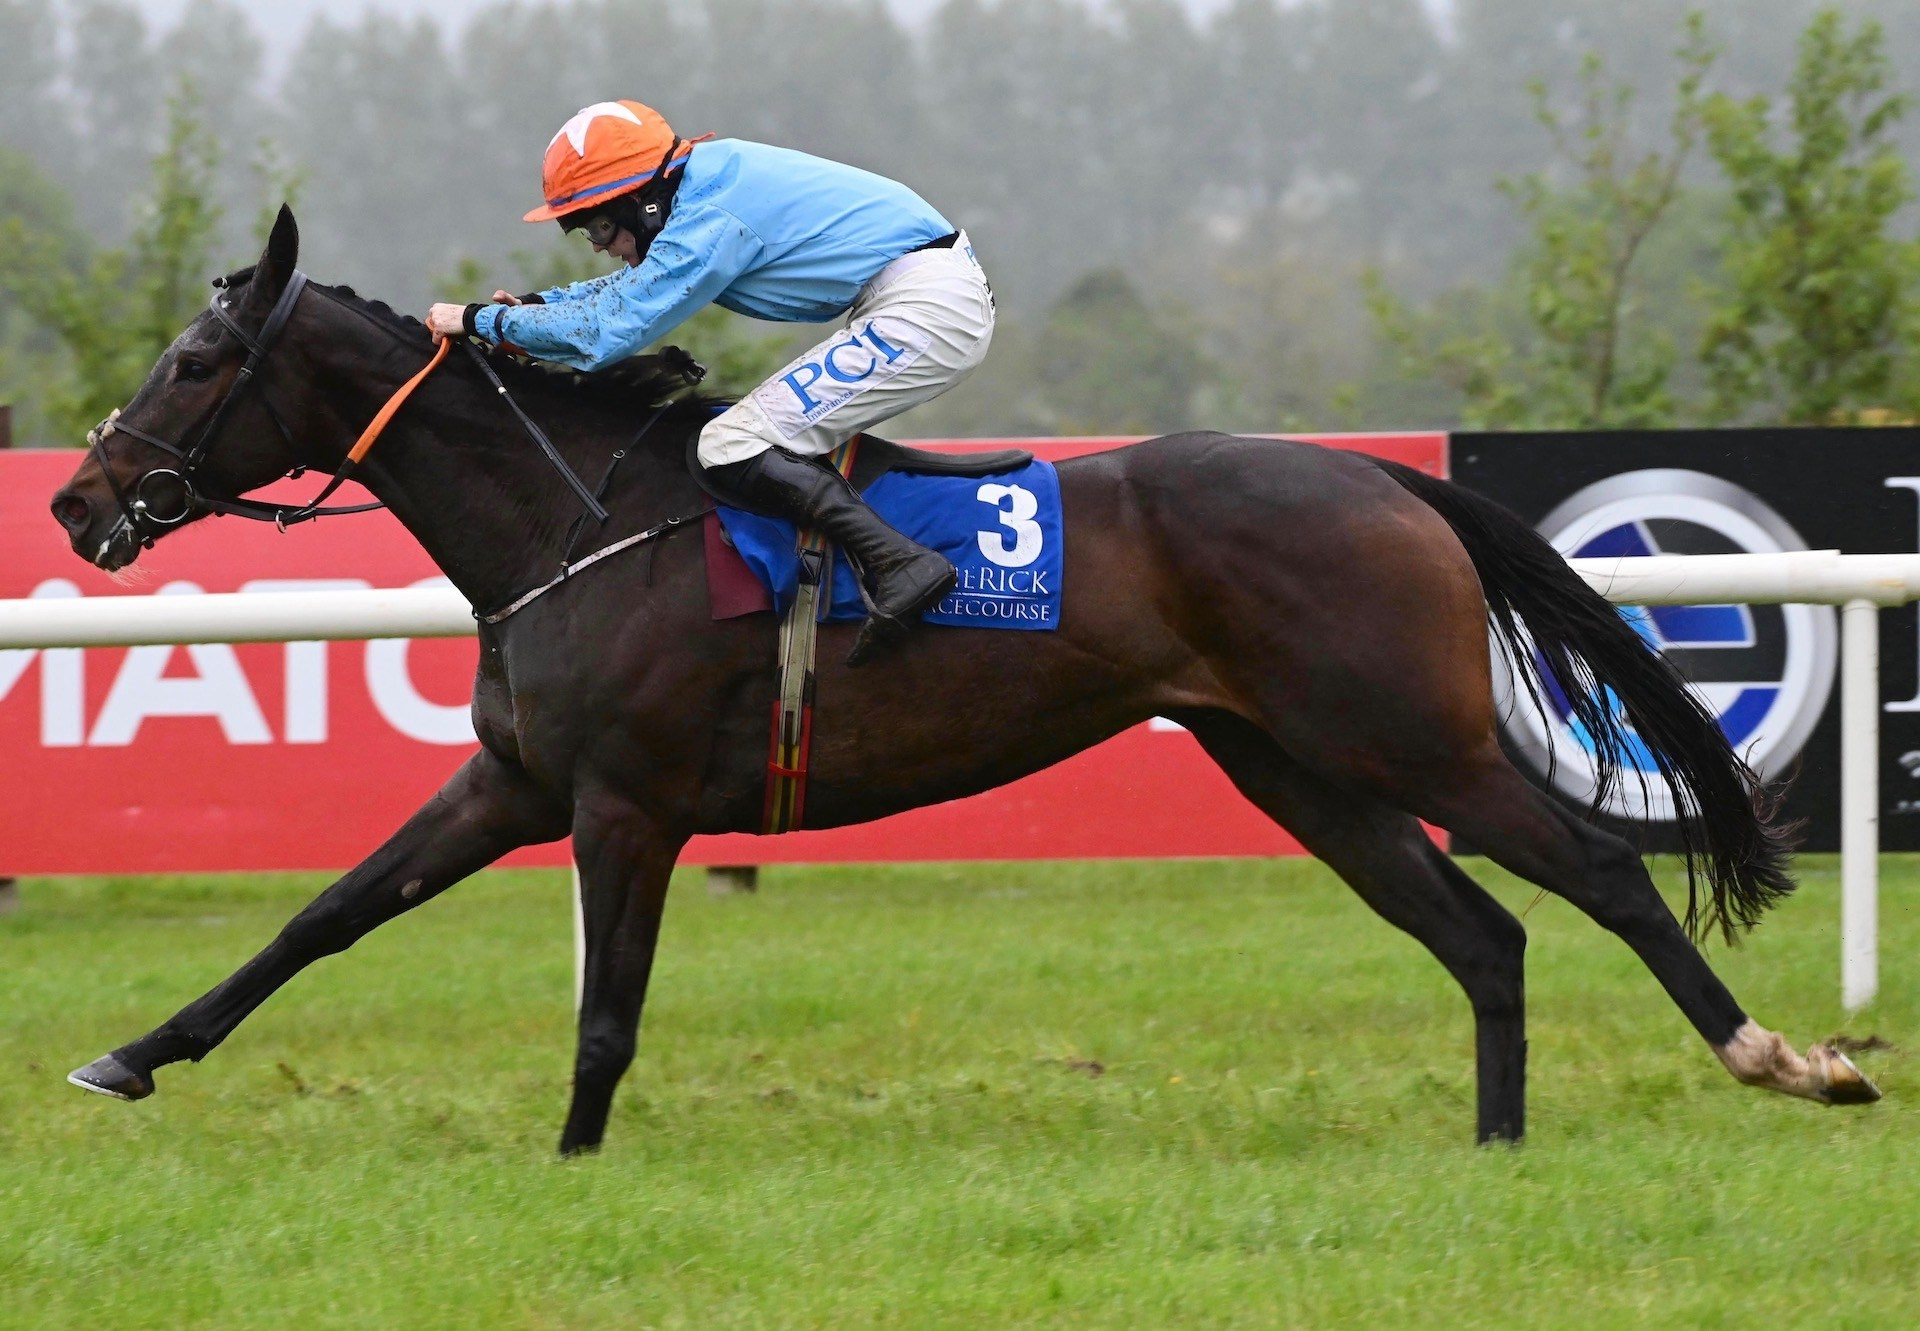 Churchill (Galileo) winning the G3 Tyros Stakes at Leopardstown